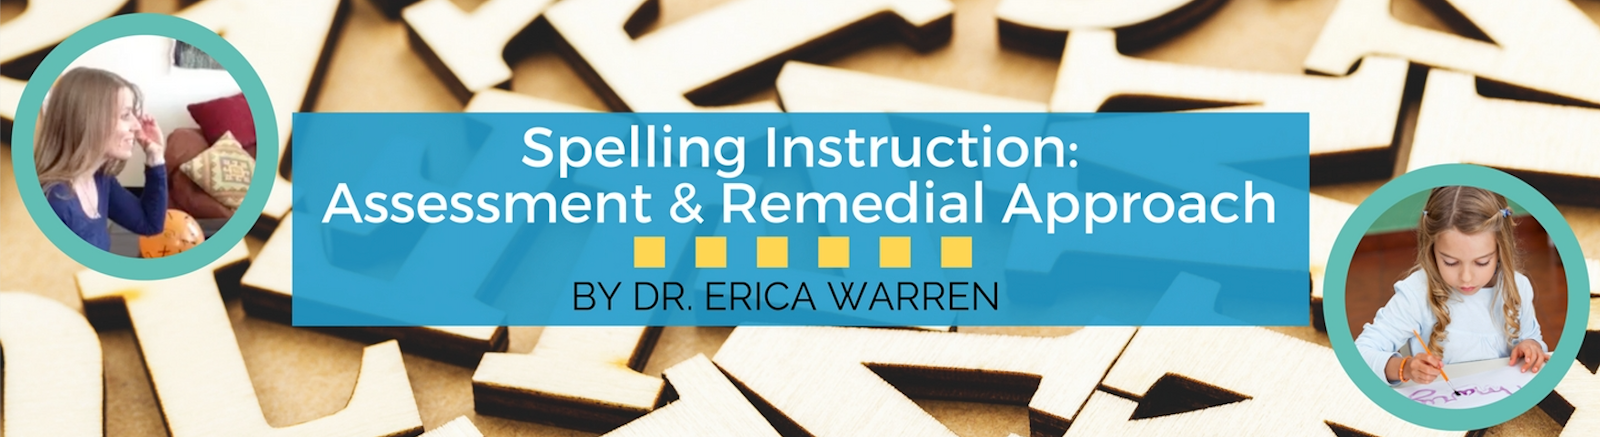 Teaching spelling course